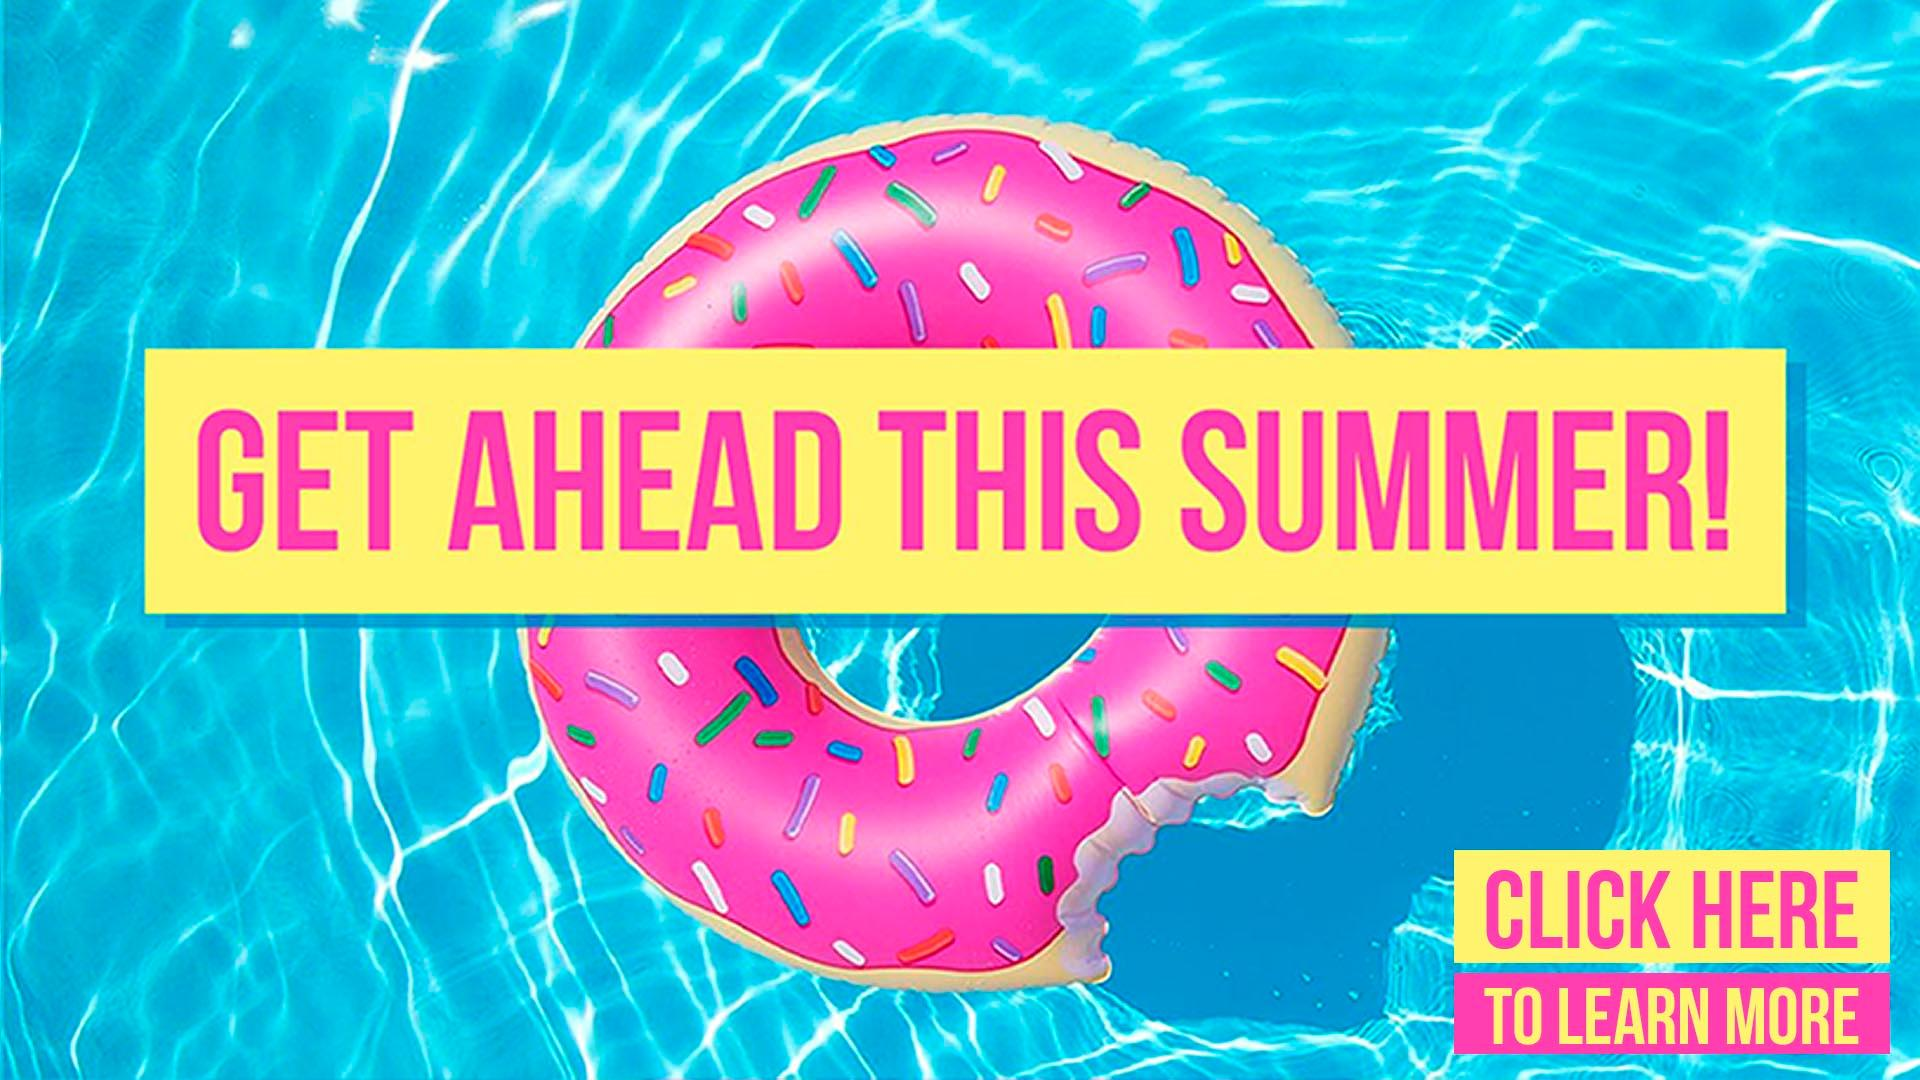 Get Ahead This Summer! Click here to learn more